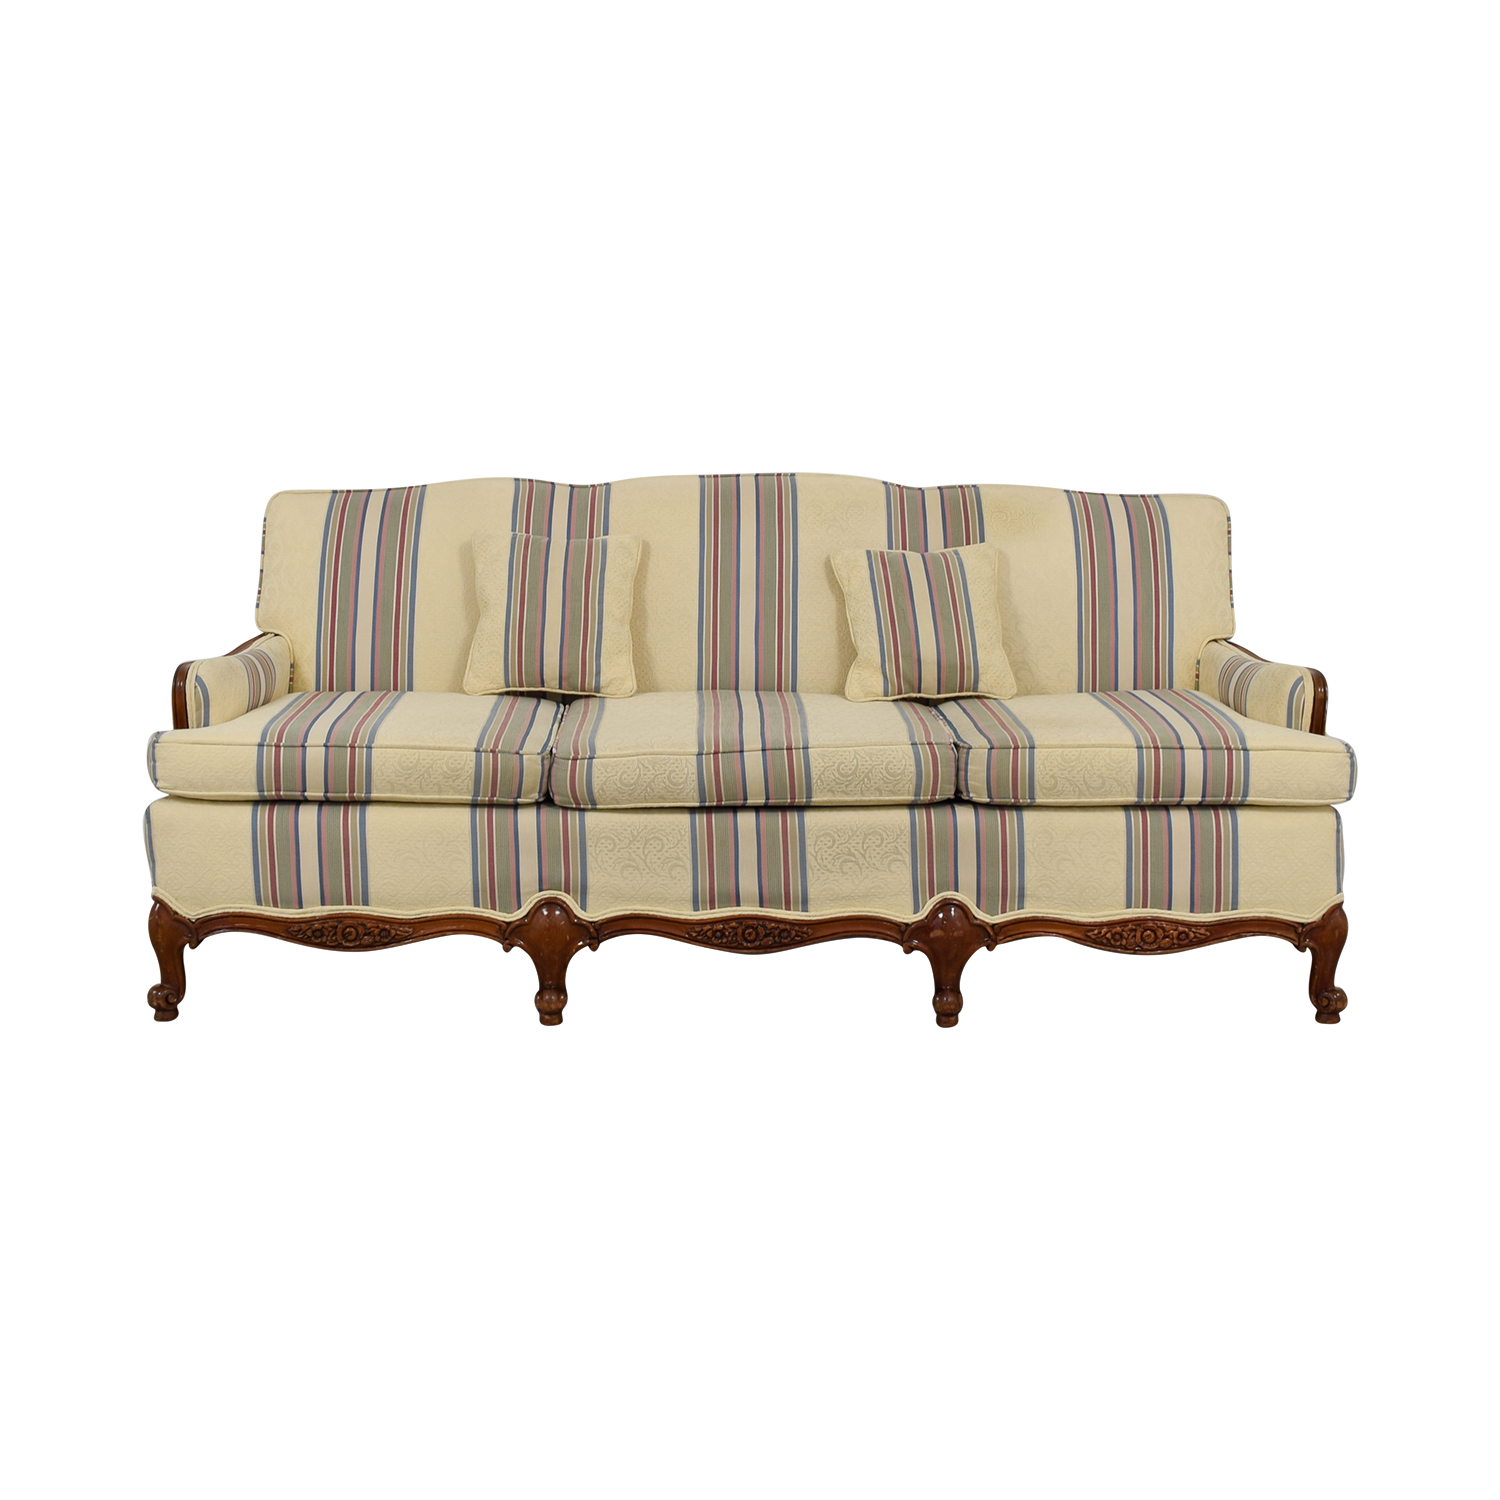 buy Beige Multi-Colored Striped Three-Cushion Couch  Classic Sofas